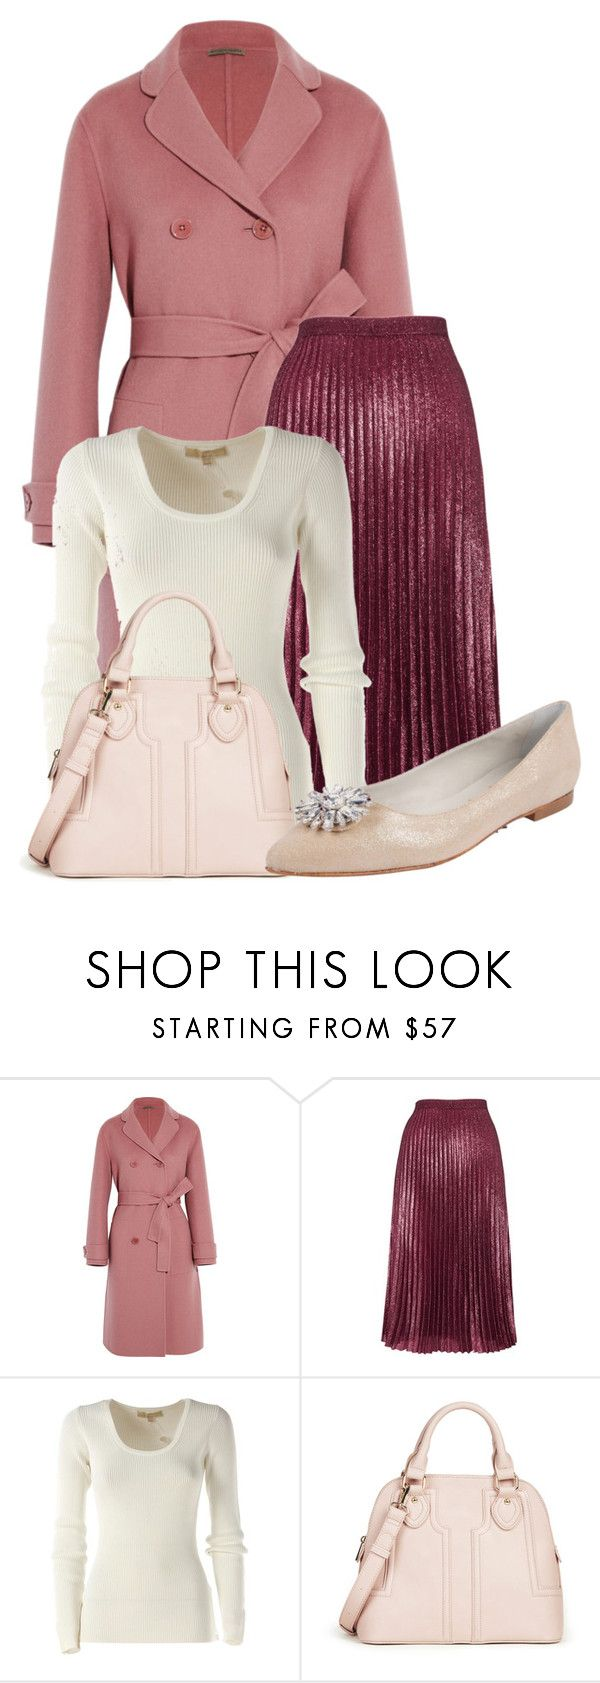 """""""Untitled #22631"""" by nanette-253 ❤ liked on Polyvore featuring Bottega Veneta, Whistles, Michael Kors, Sole Society and Butter Shoes"""